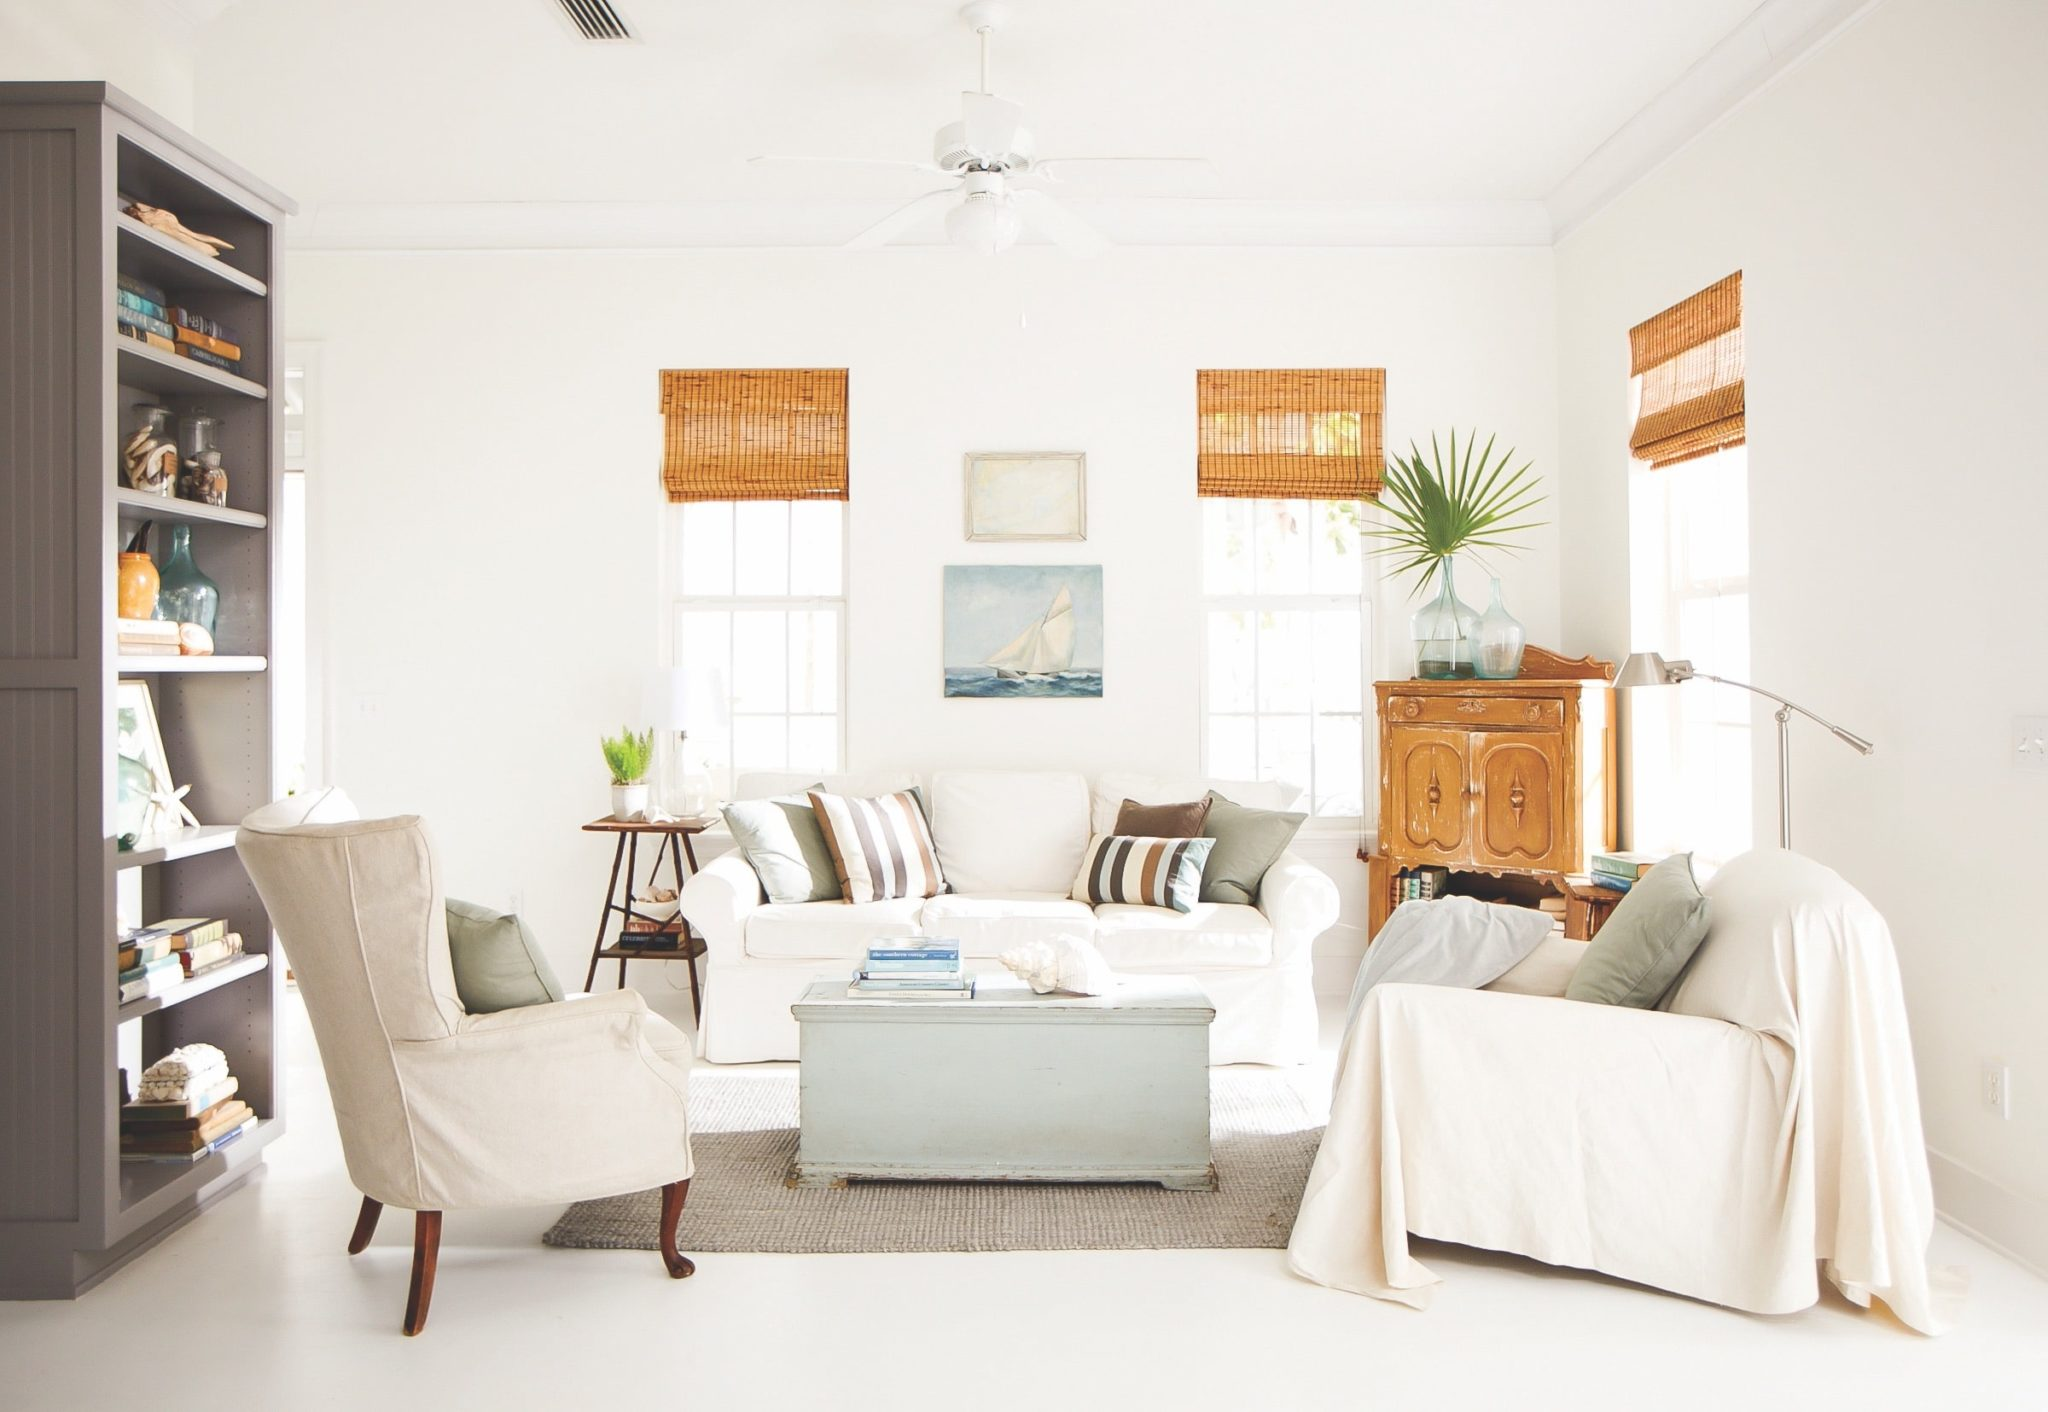 Interior designer Holly Shipman used beachy accents and a natural color palette for the inviting sitting room at this home in Seagrove Beach, Florida.